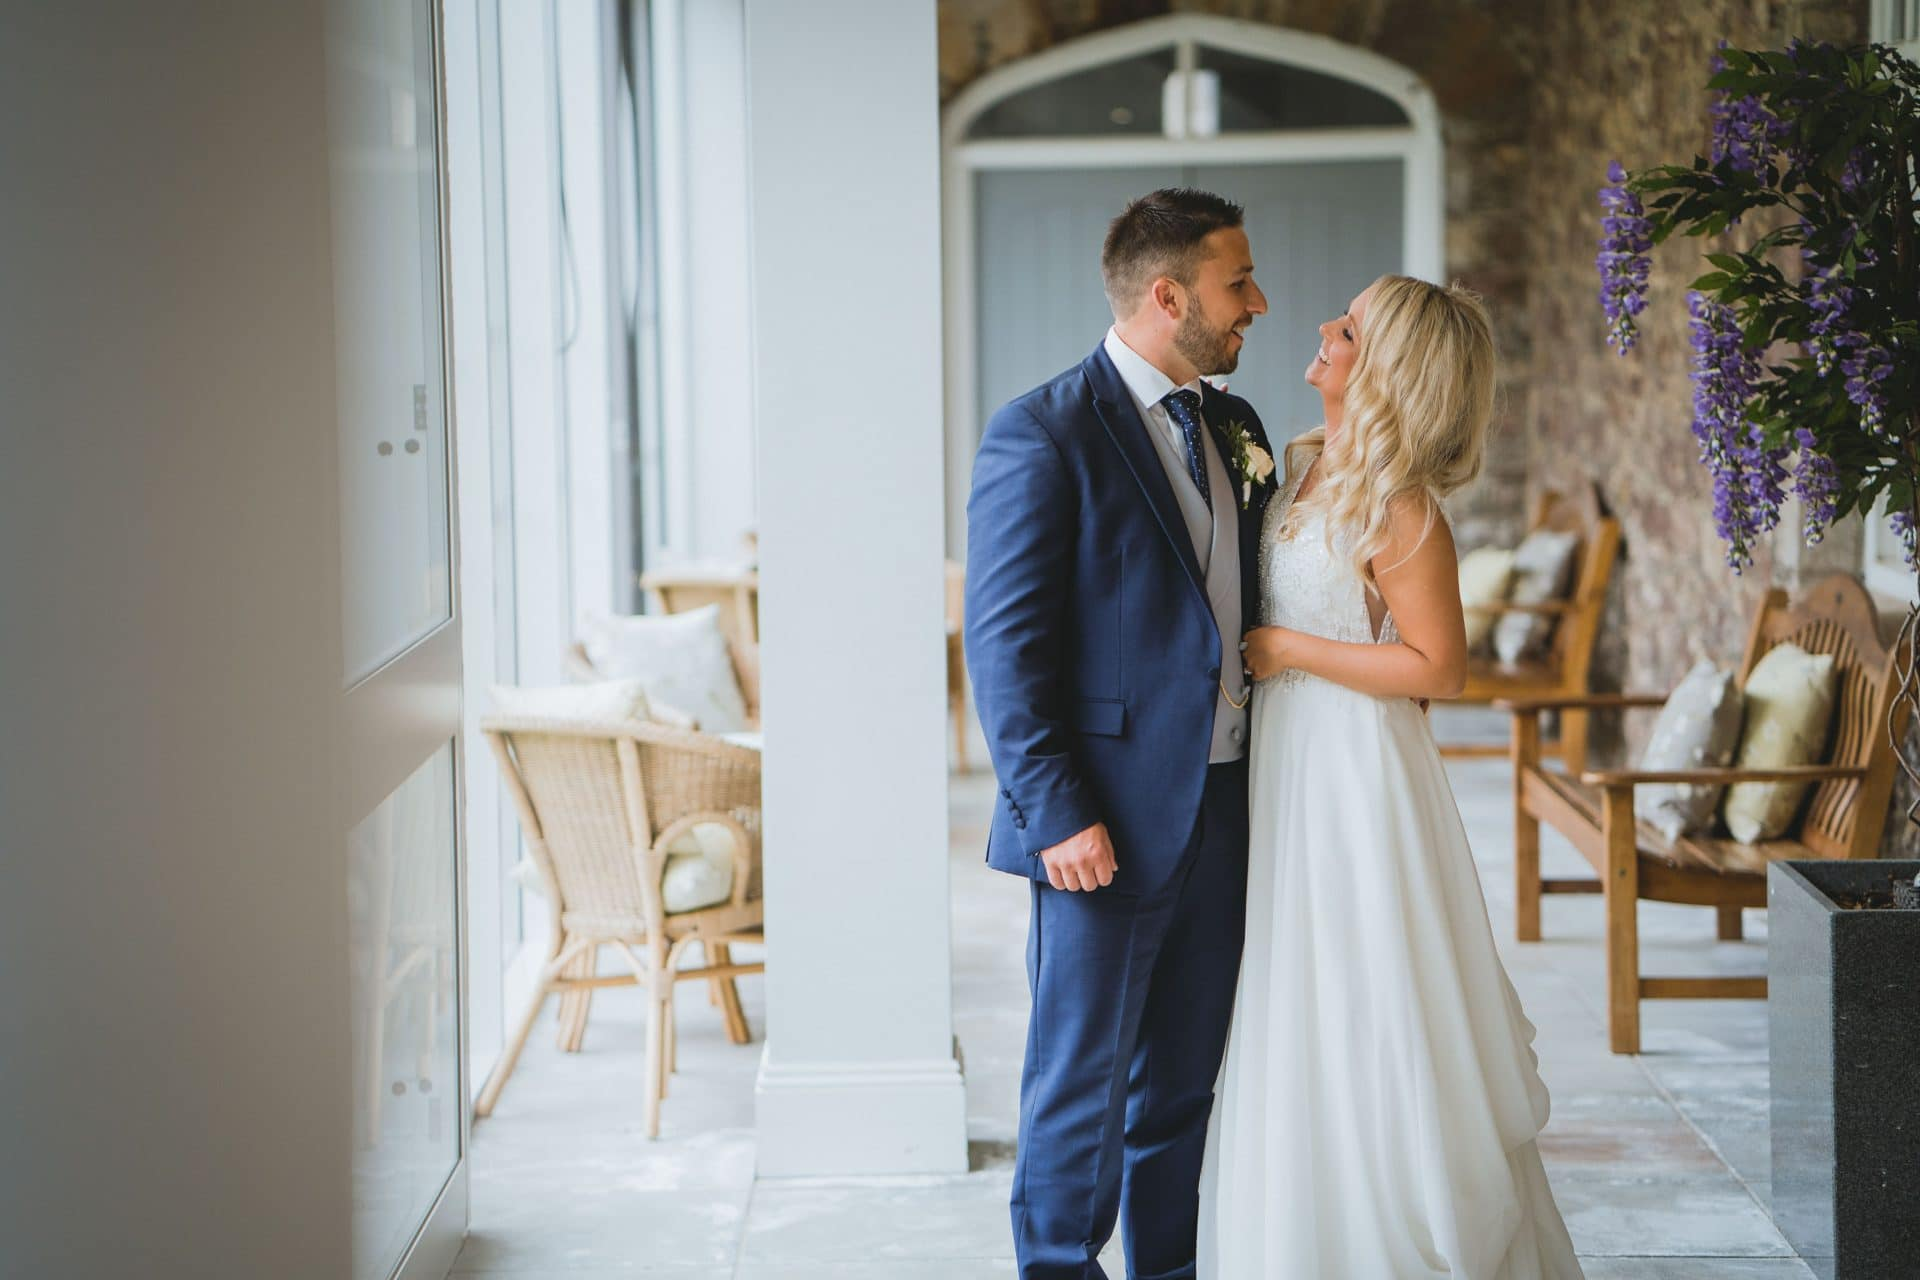 Wedding photography prices and packages in south wales